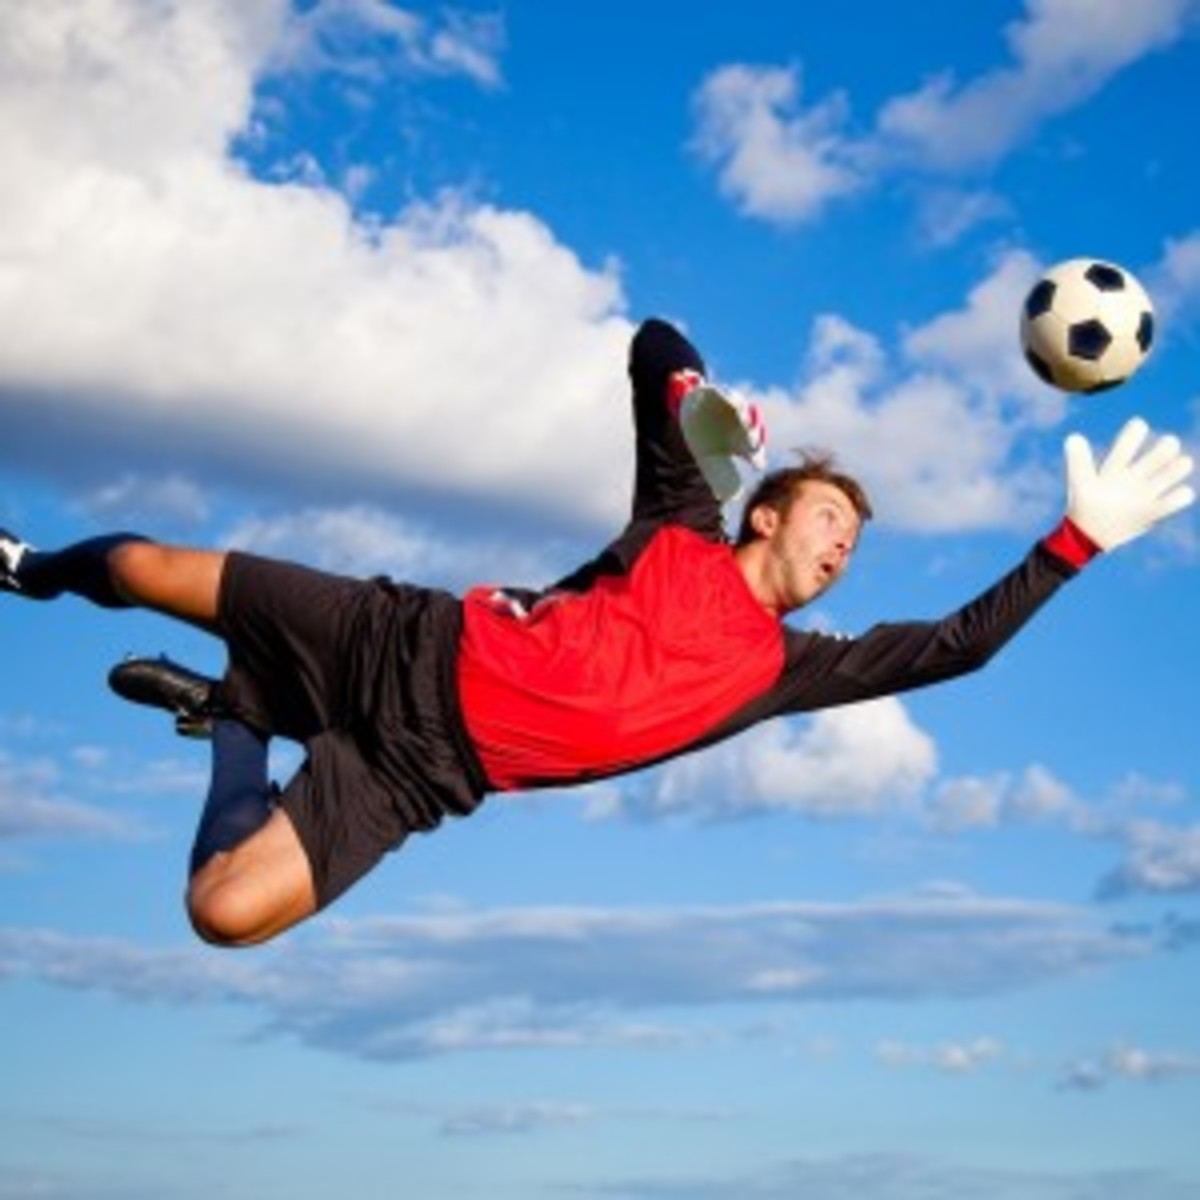 Flying soccer player wearing baggies